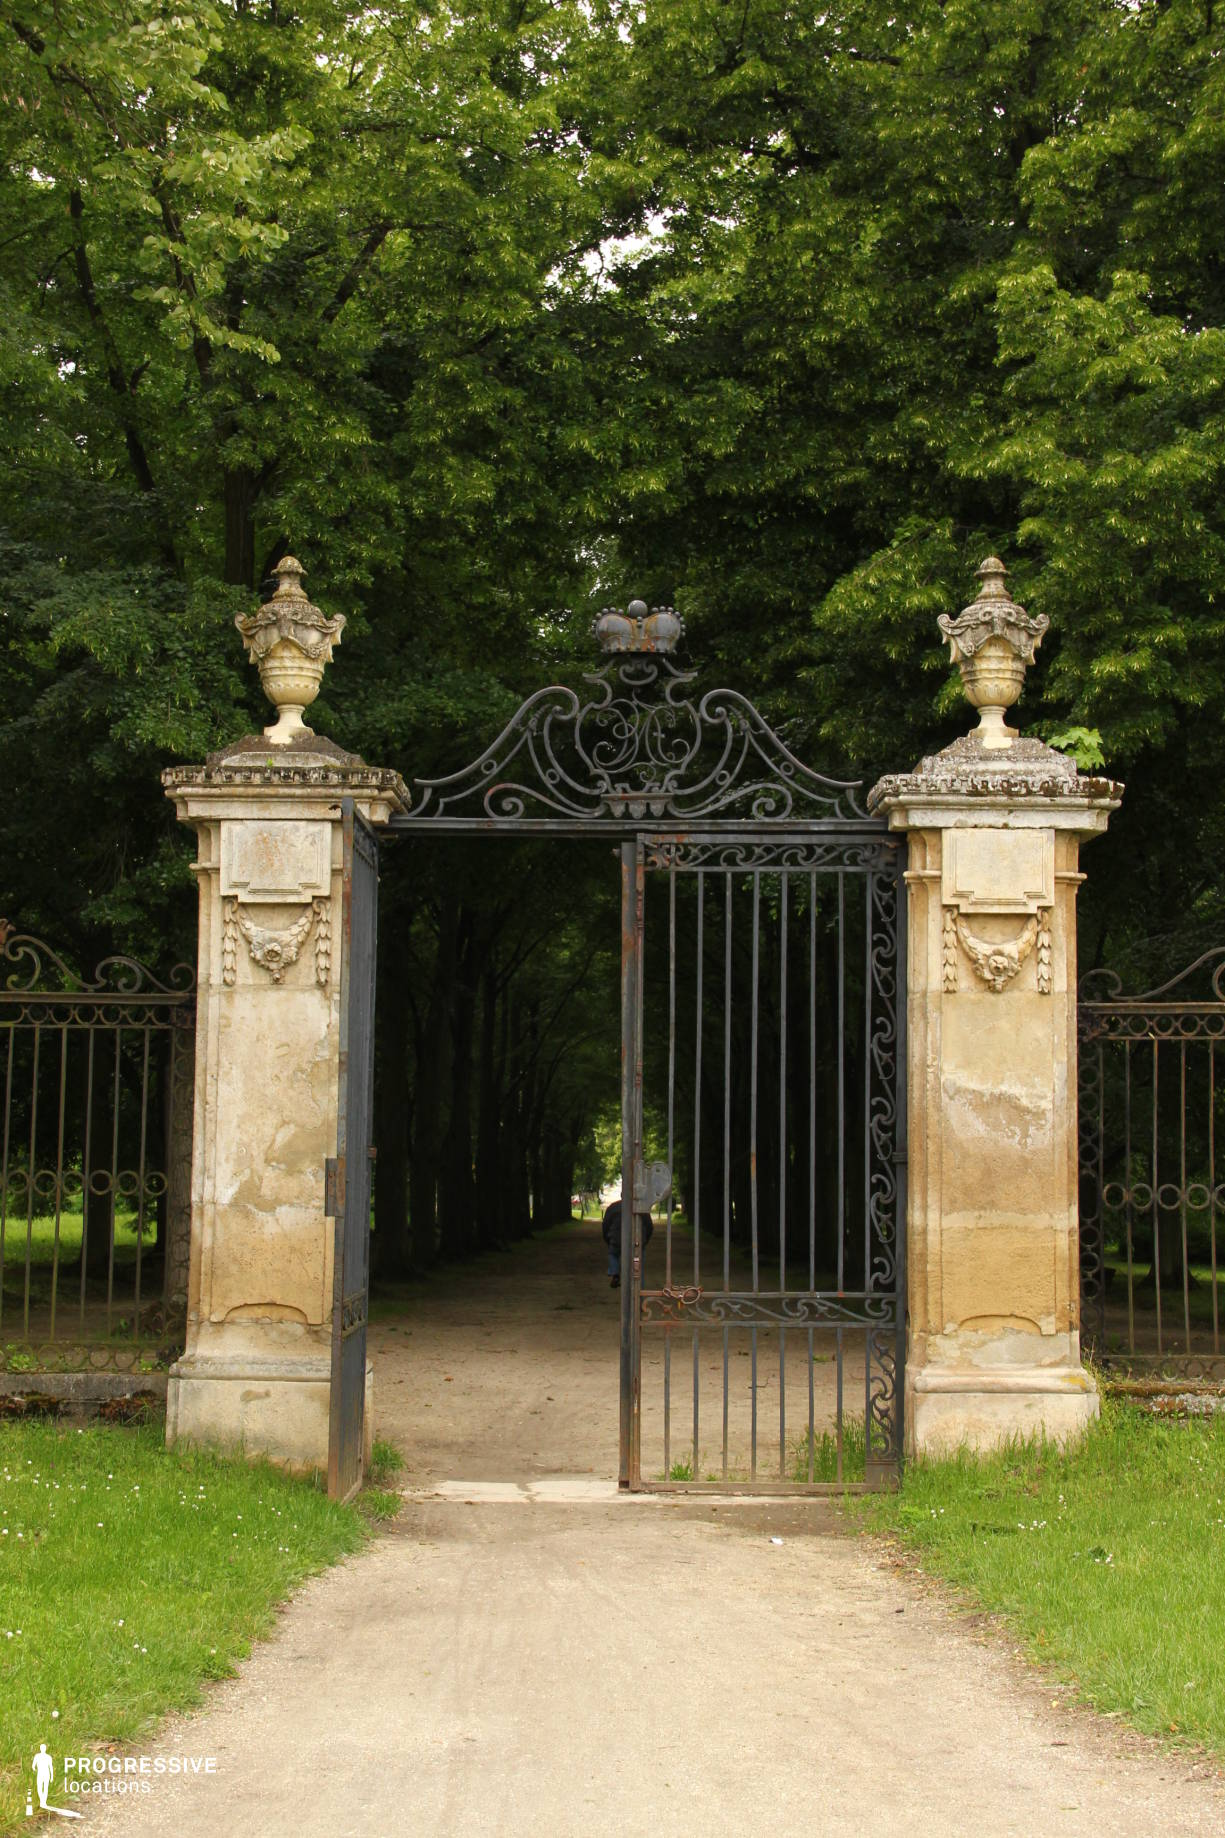 Locations in Hungary: Esterhazy Palace, Wrought Iron Gate